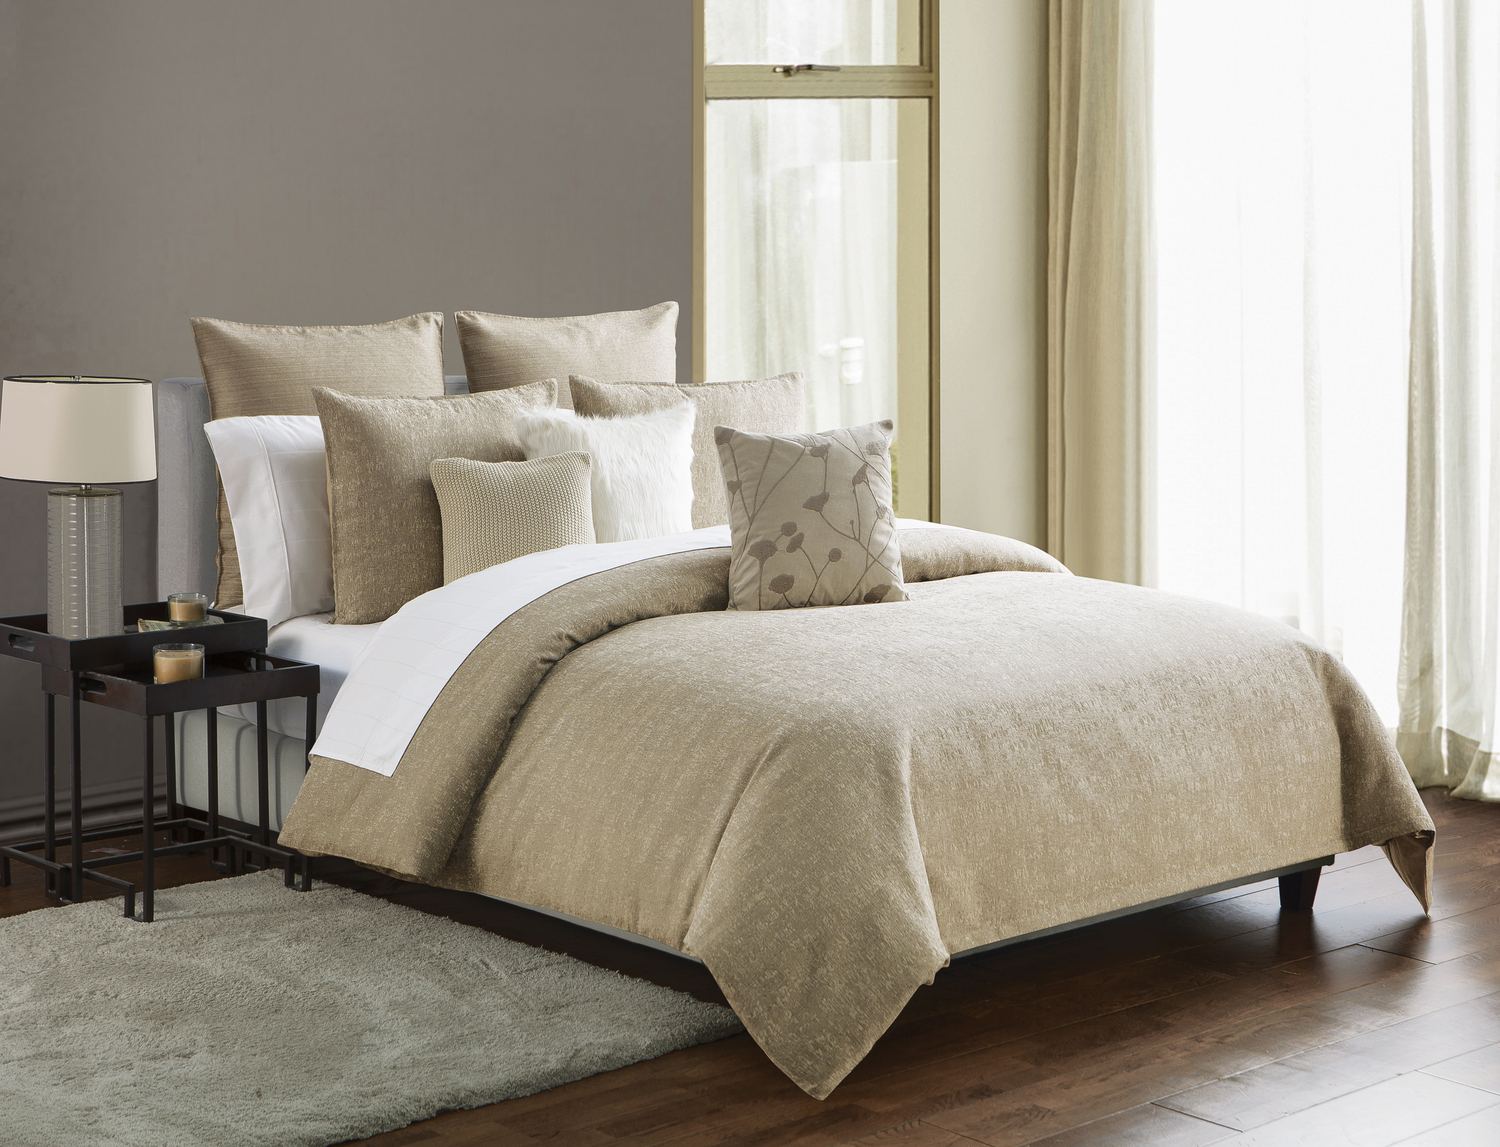 Driftwood Sand by Highline Bedding Co.